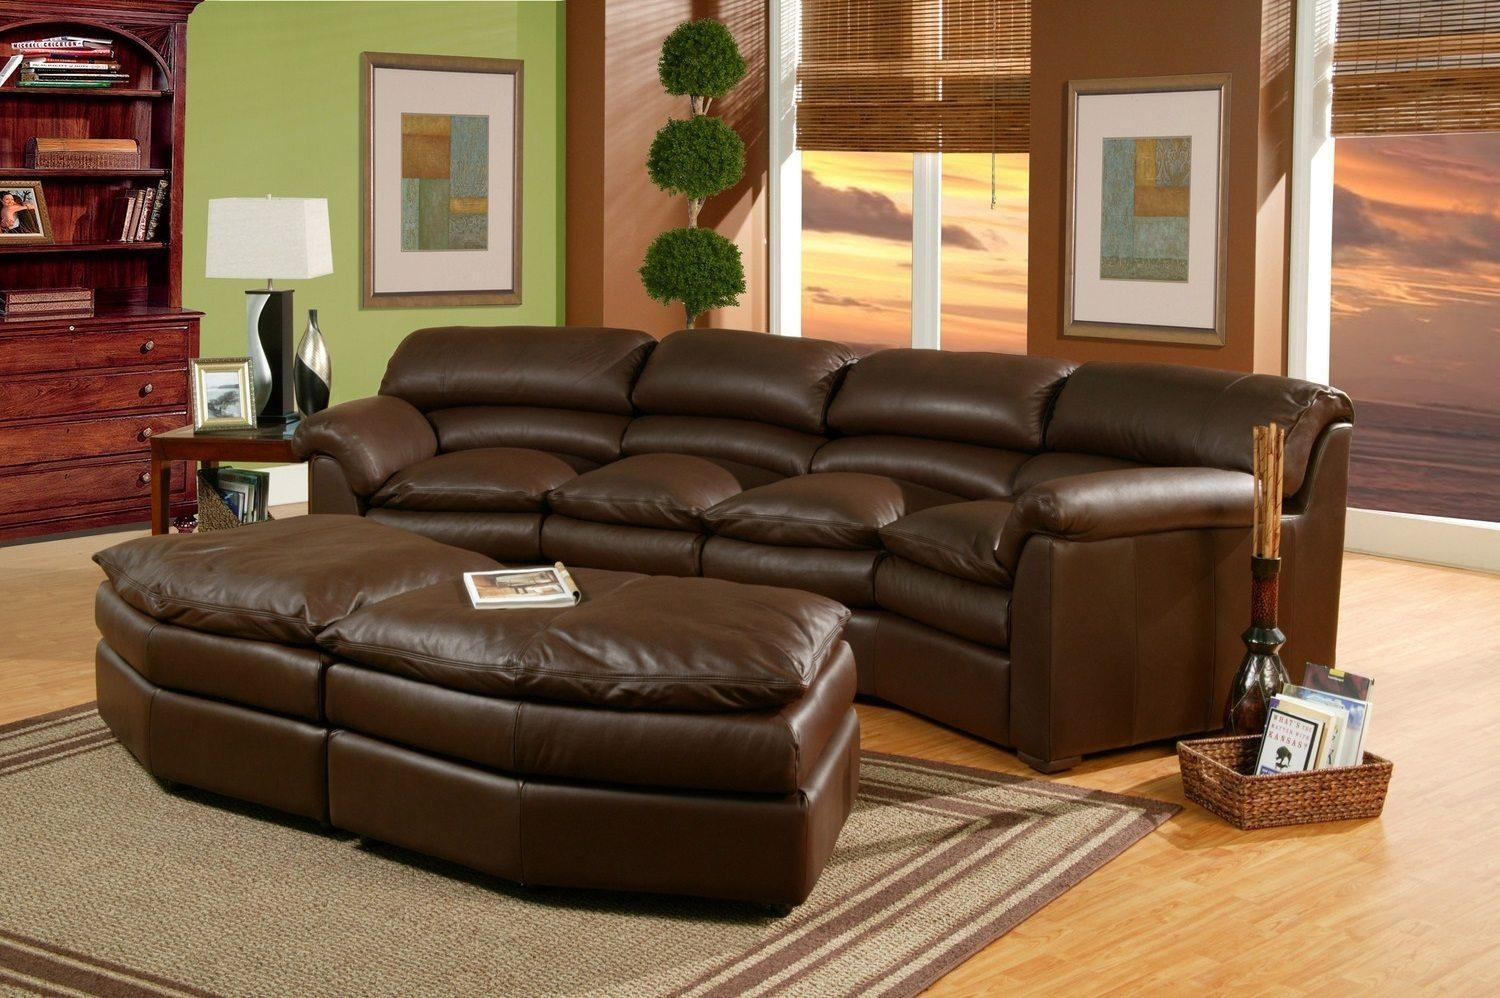 Sofa : New Theatre Sectional Sofas Home Design Awesome Lovely With Theatre Sectional Sofas (Image 16 of 20)